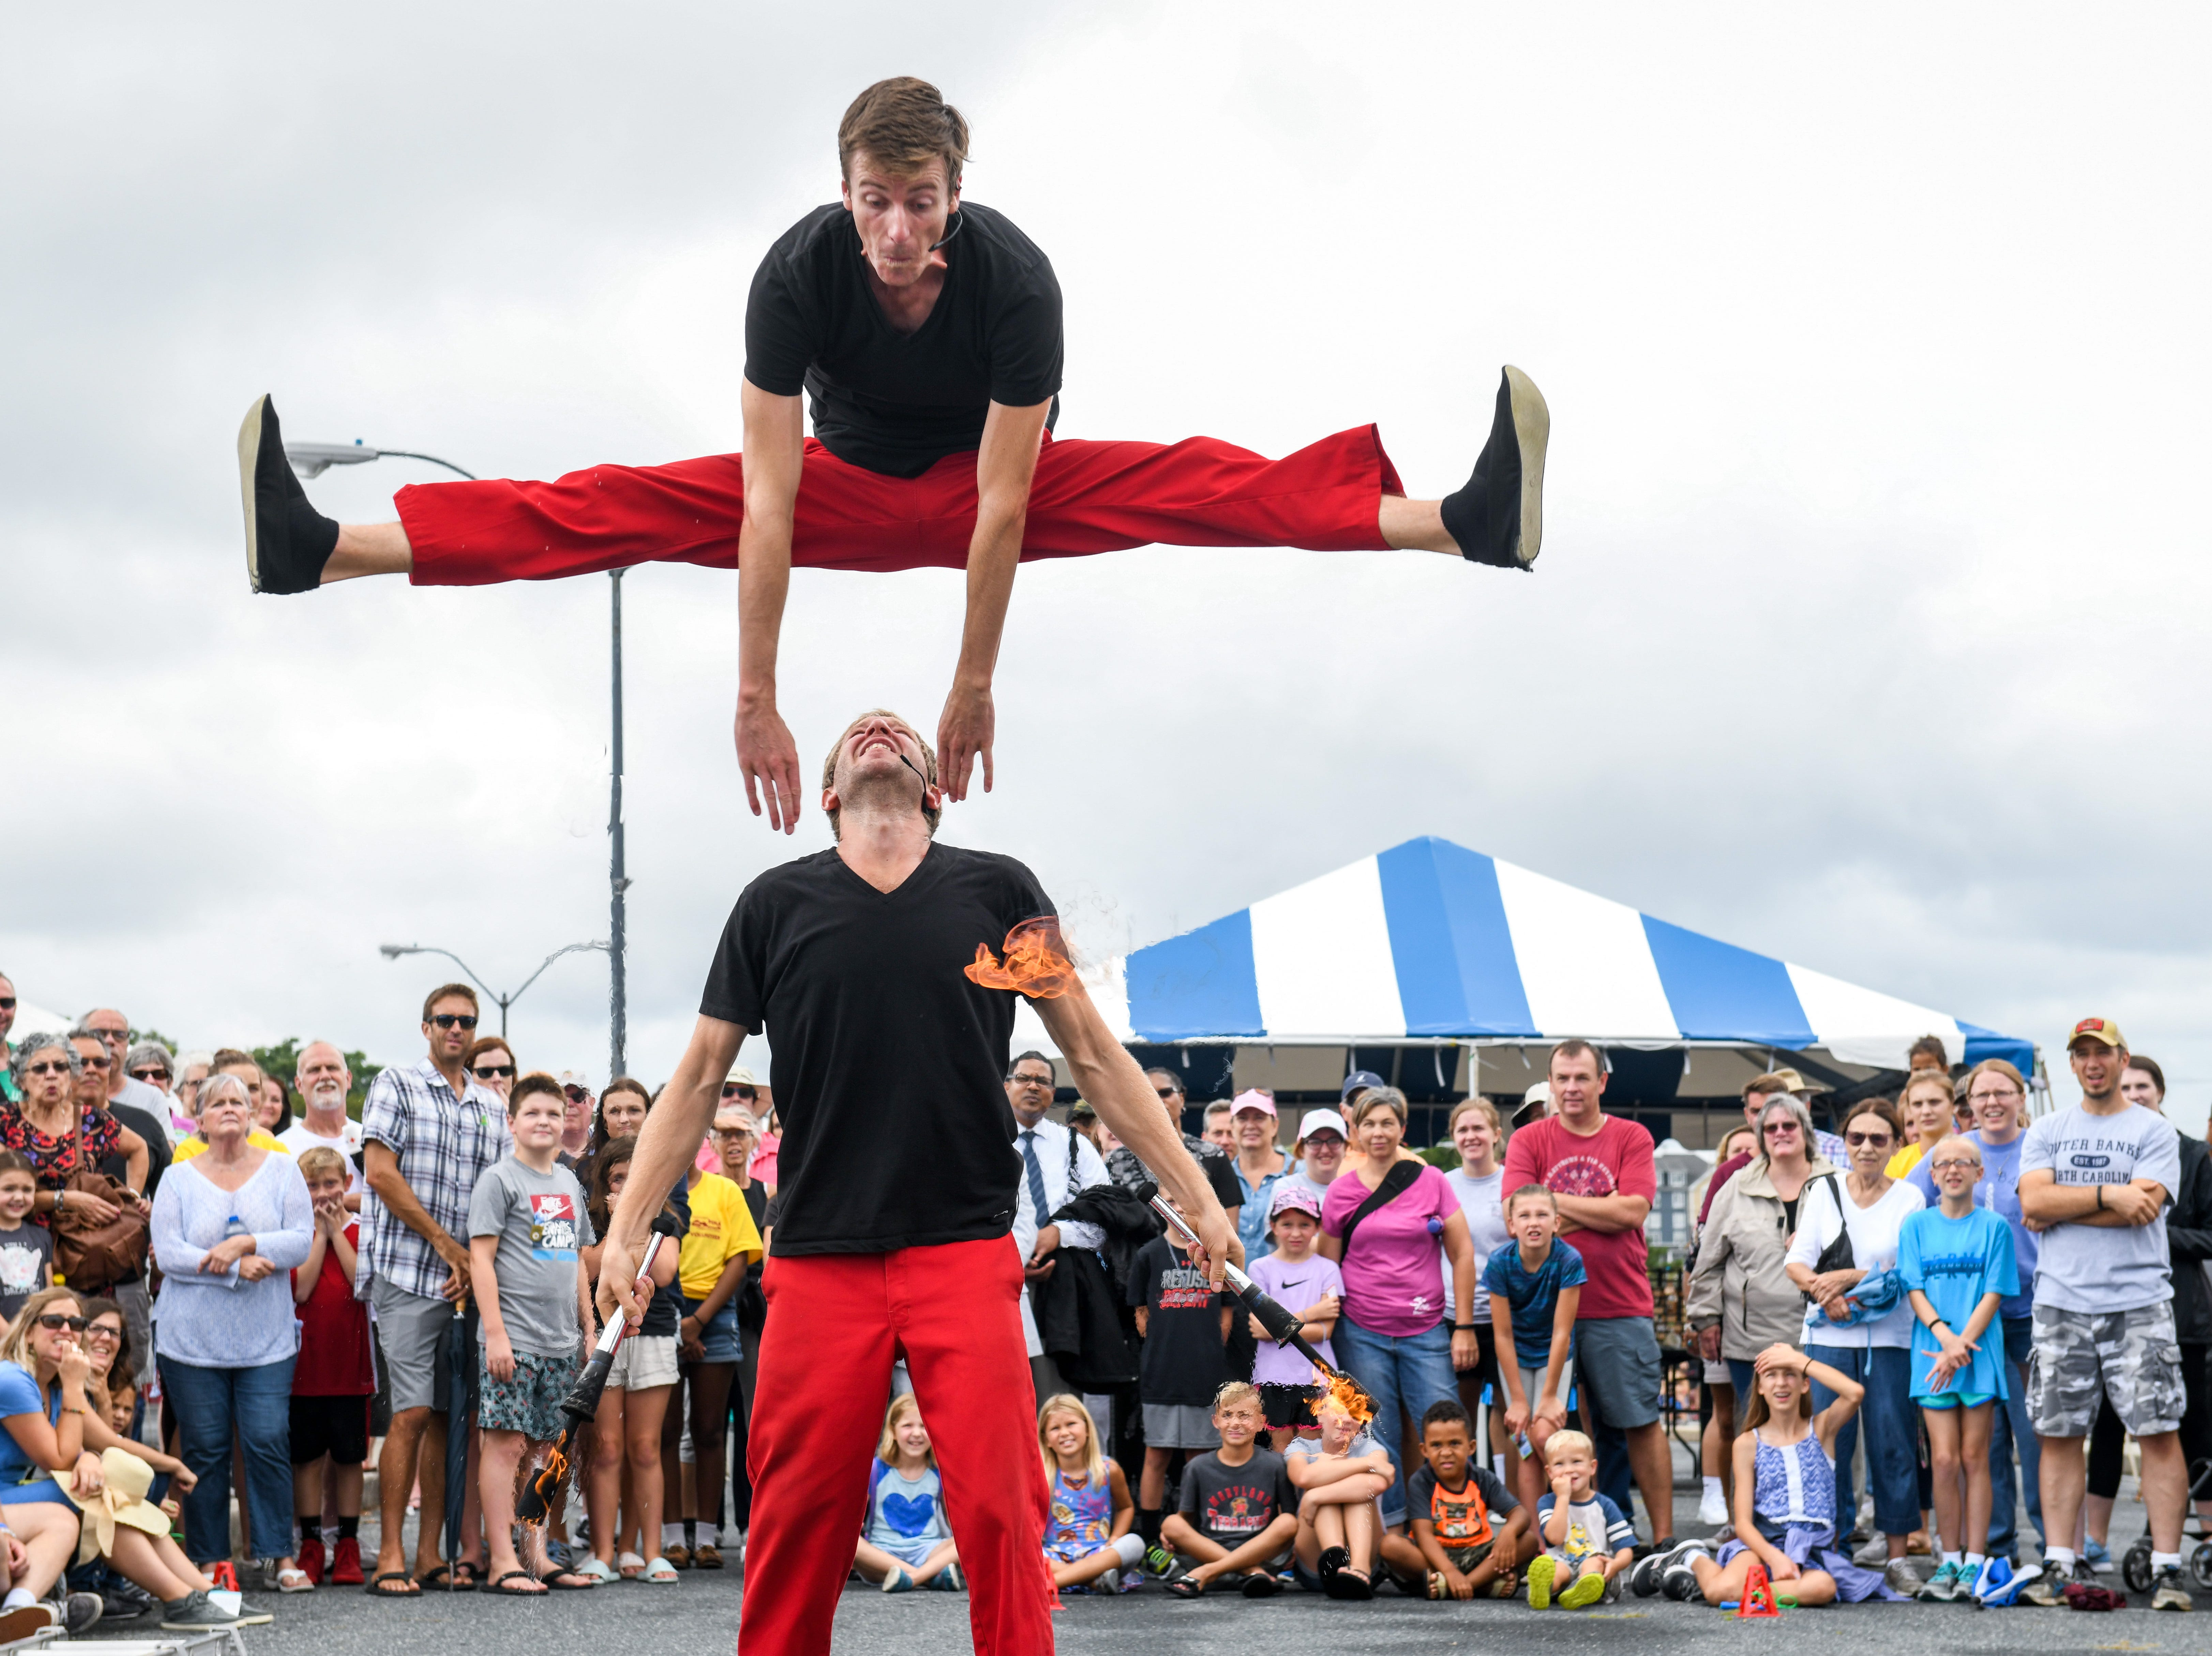 The Red Trouser Show group performs at the National Folk Festival in Salisbury on Saturday, Sept. 8.